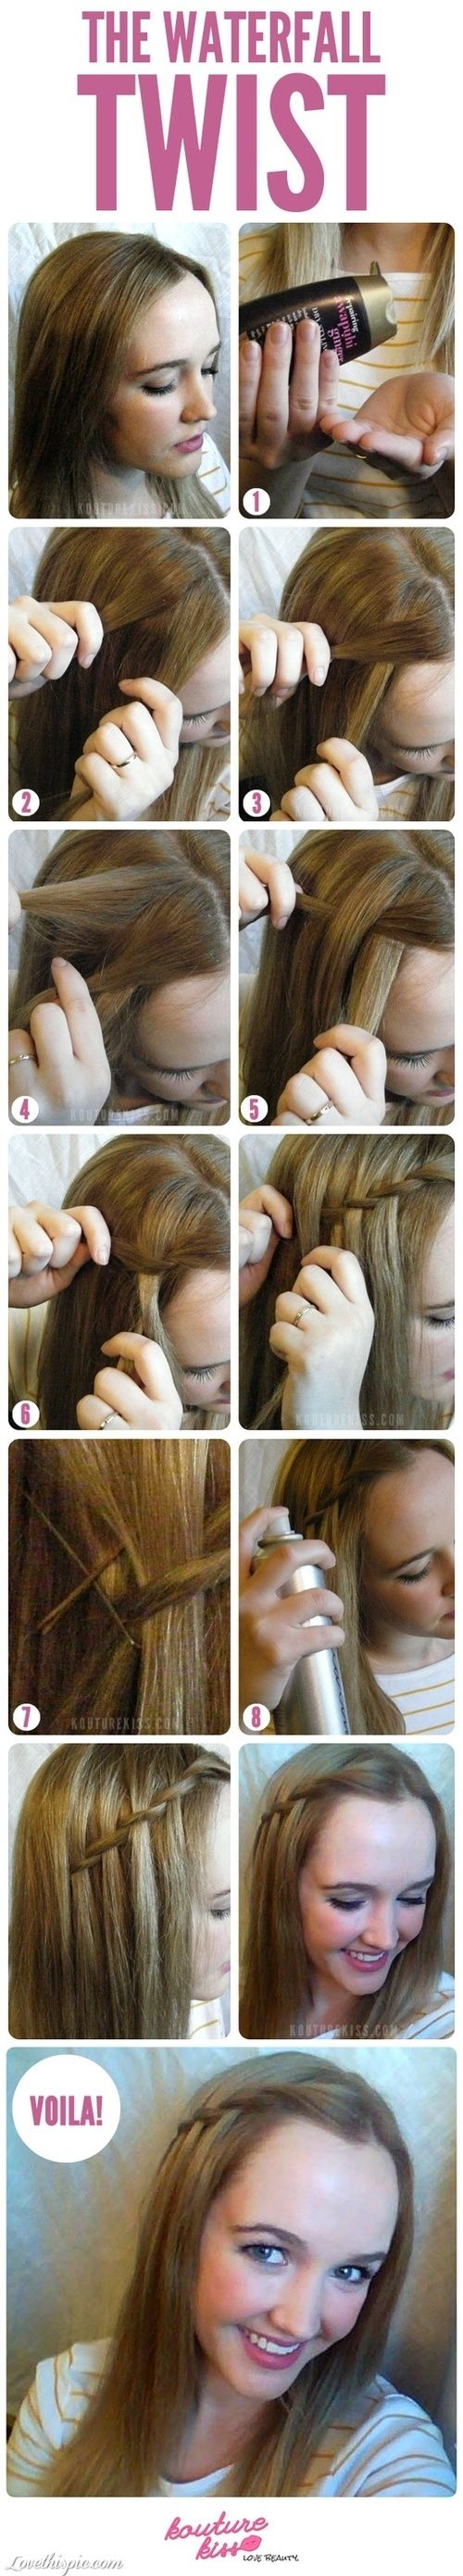 Diy waterfall twist girly cute hair girl pretty diy hairstyle diy